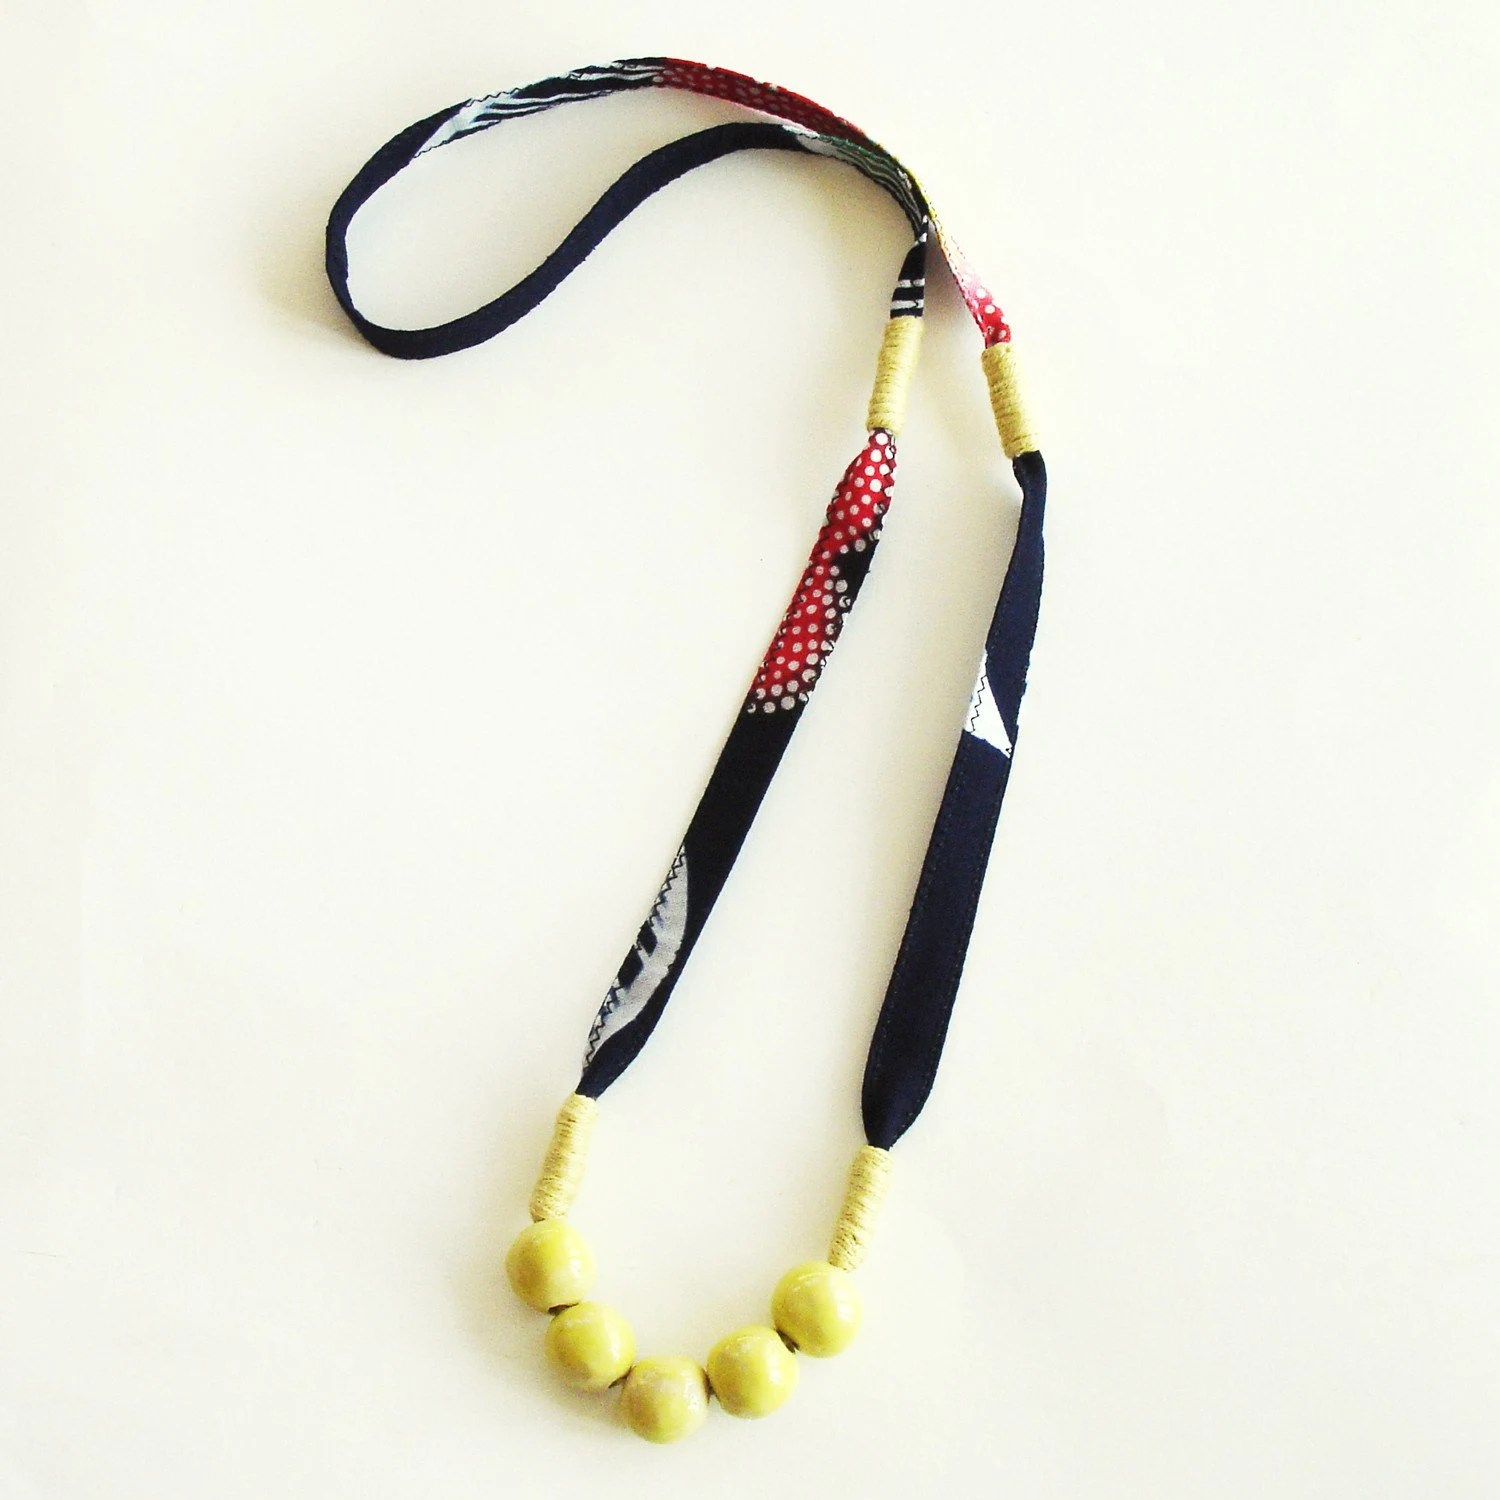 Pebble Necklace in vintage kimono fabric - navy/red/yellow